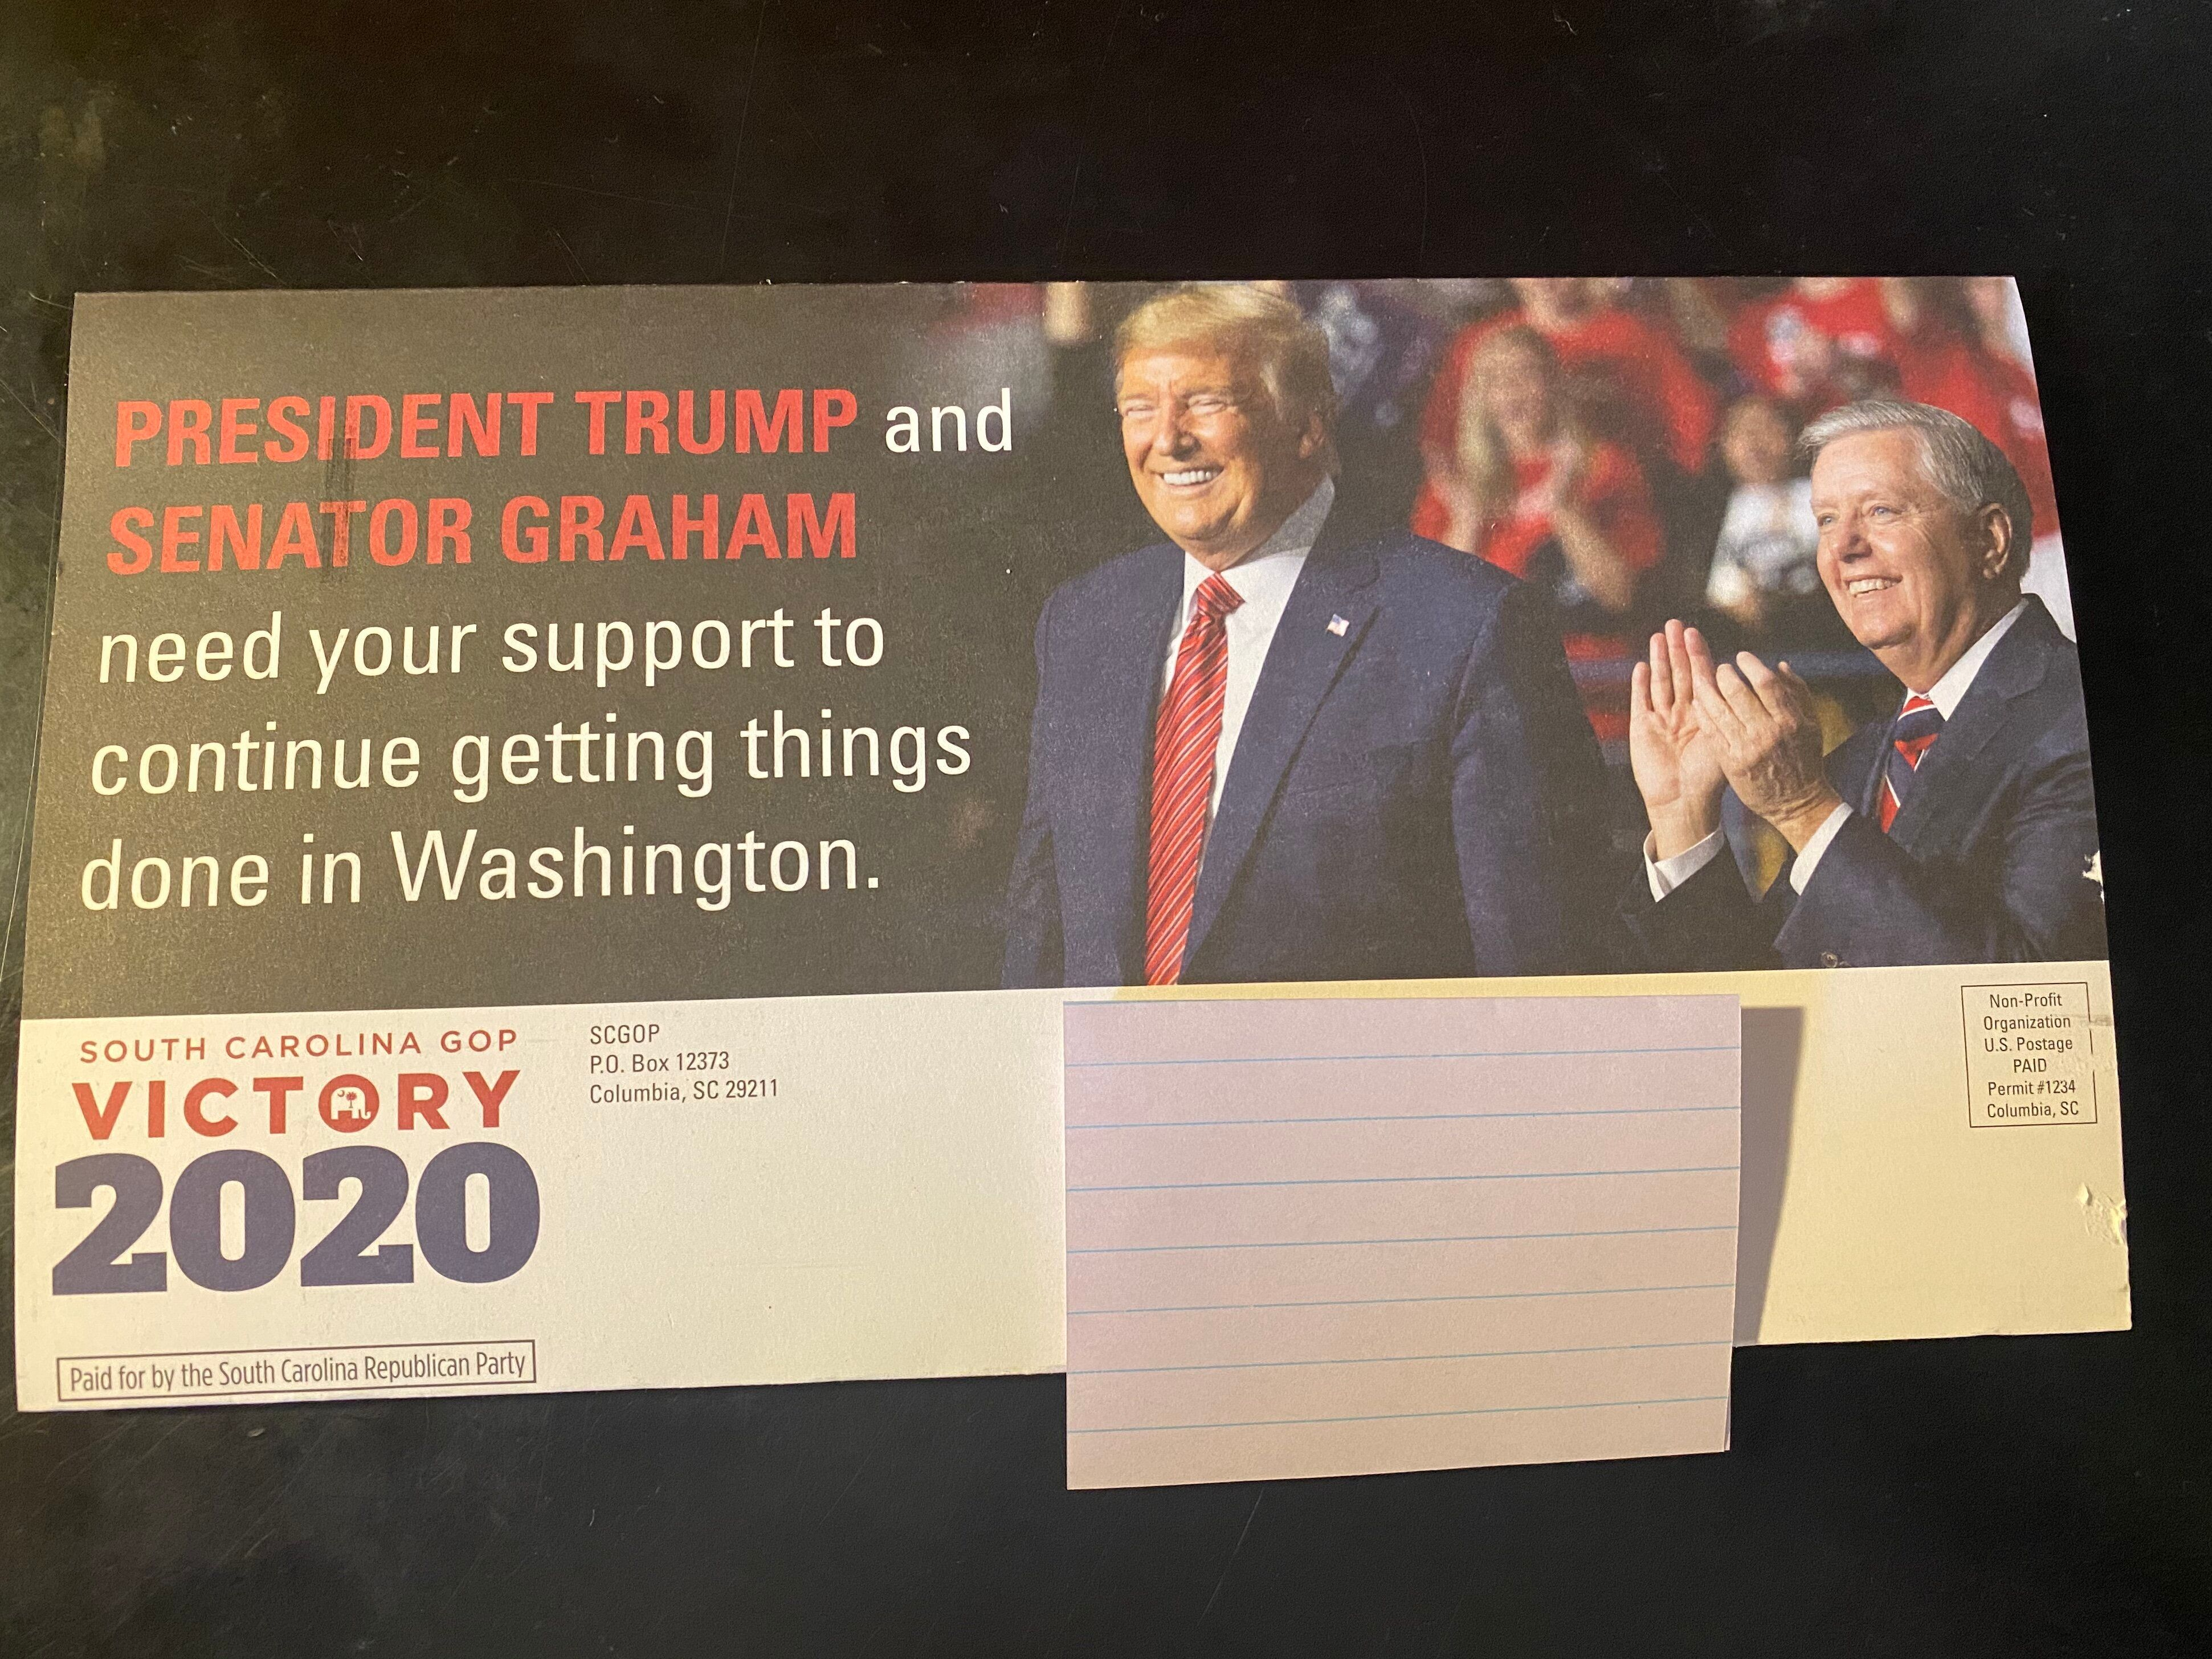 The mailer urges South Carolina Republicans to request an absentee ballot.